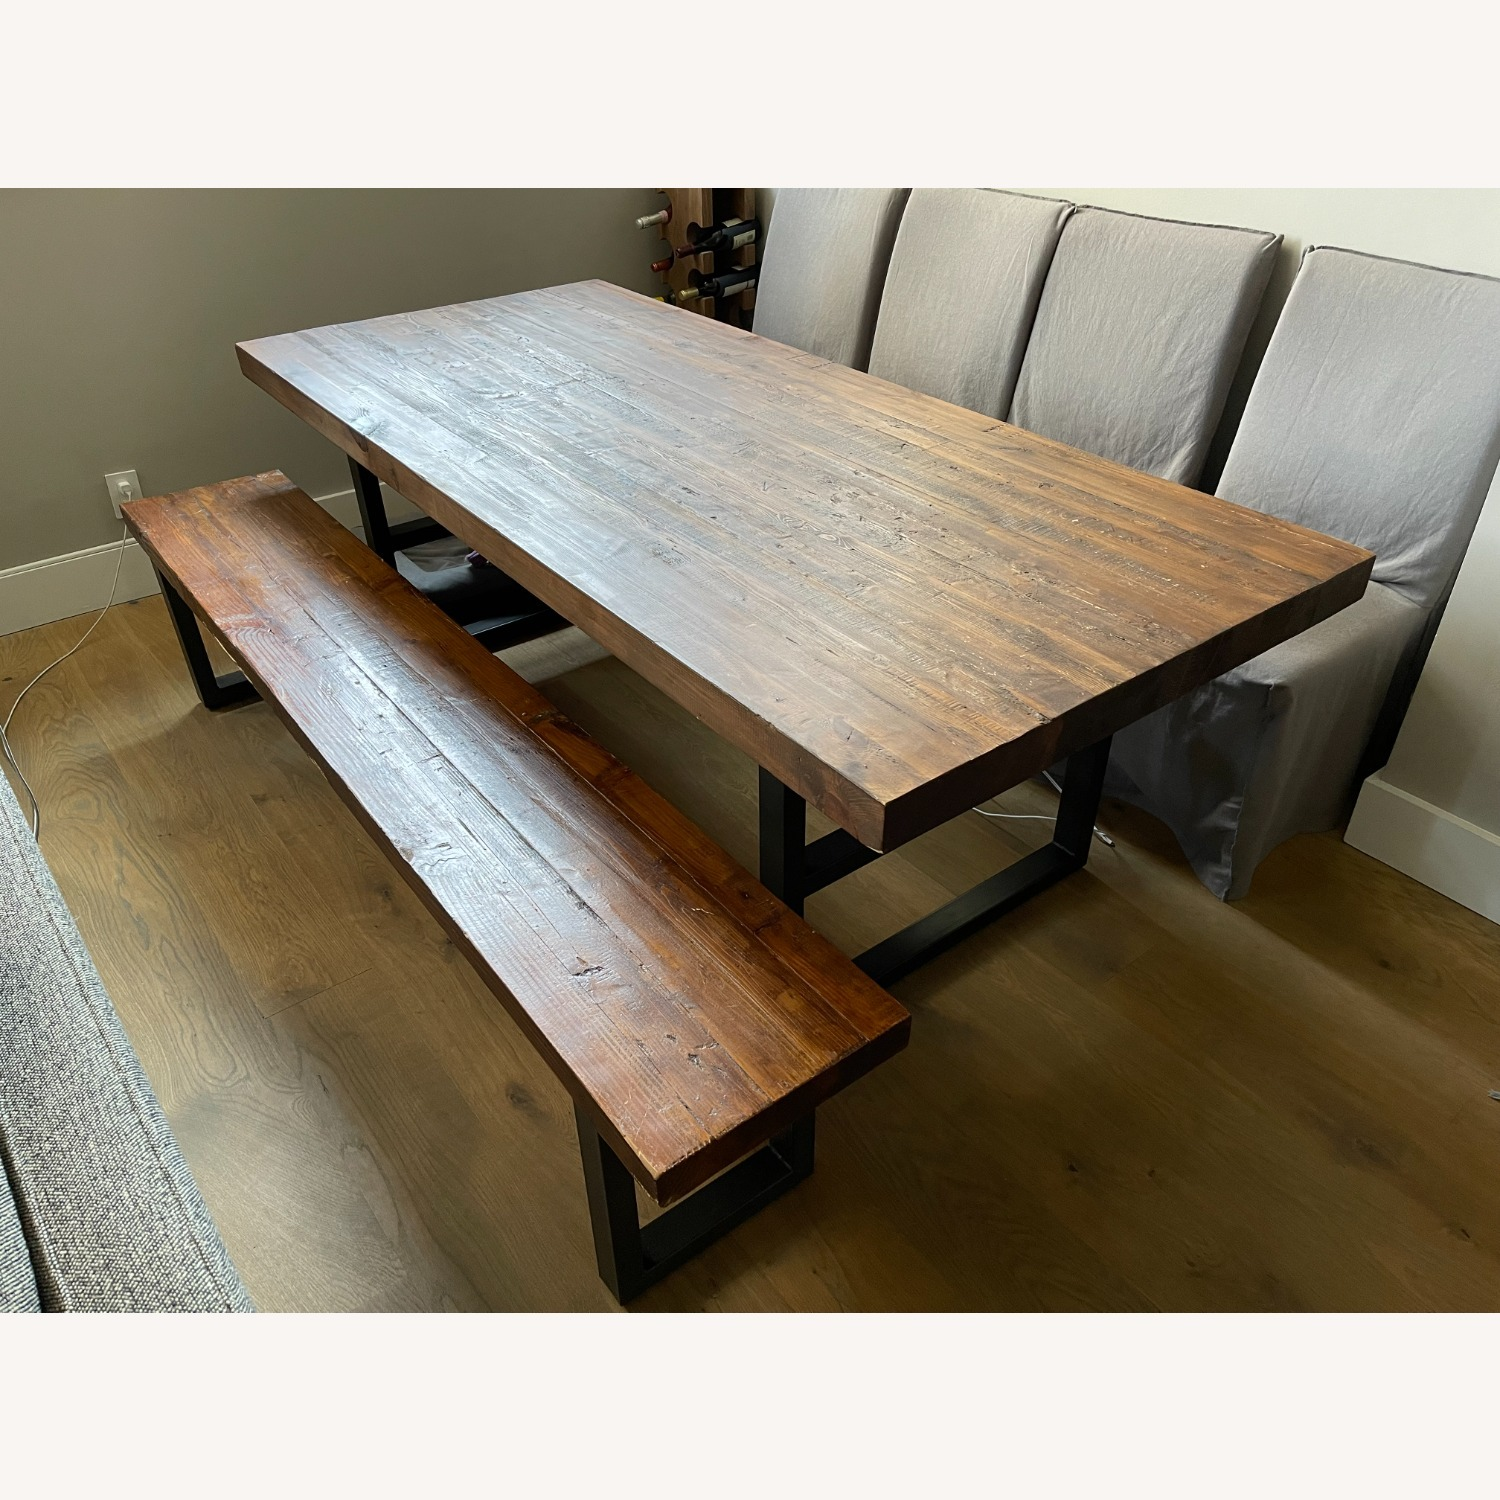 Pottery Barn Griffin Reclaimed Wood Dining Bench - image-1